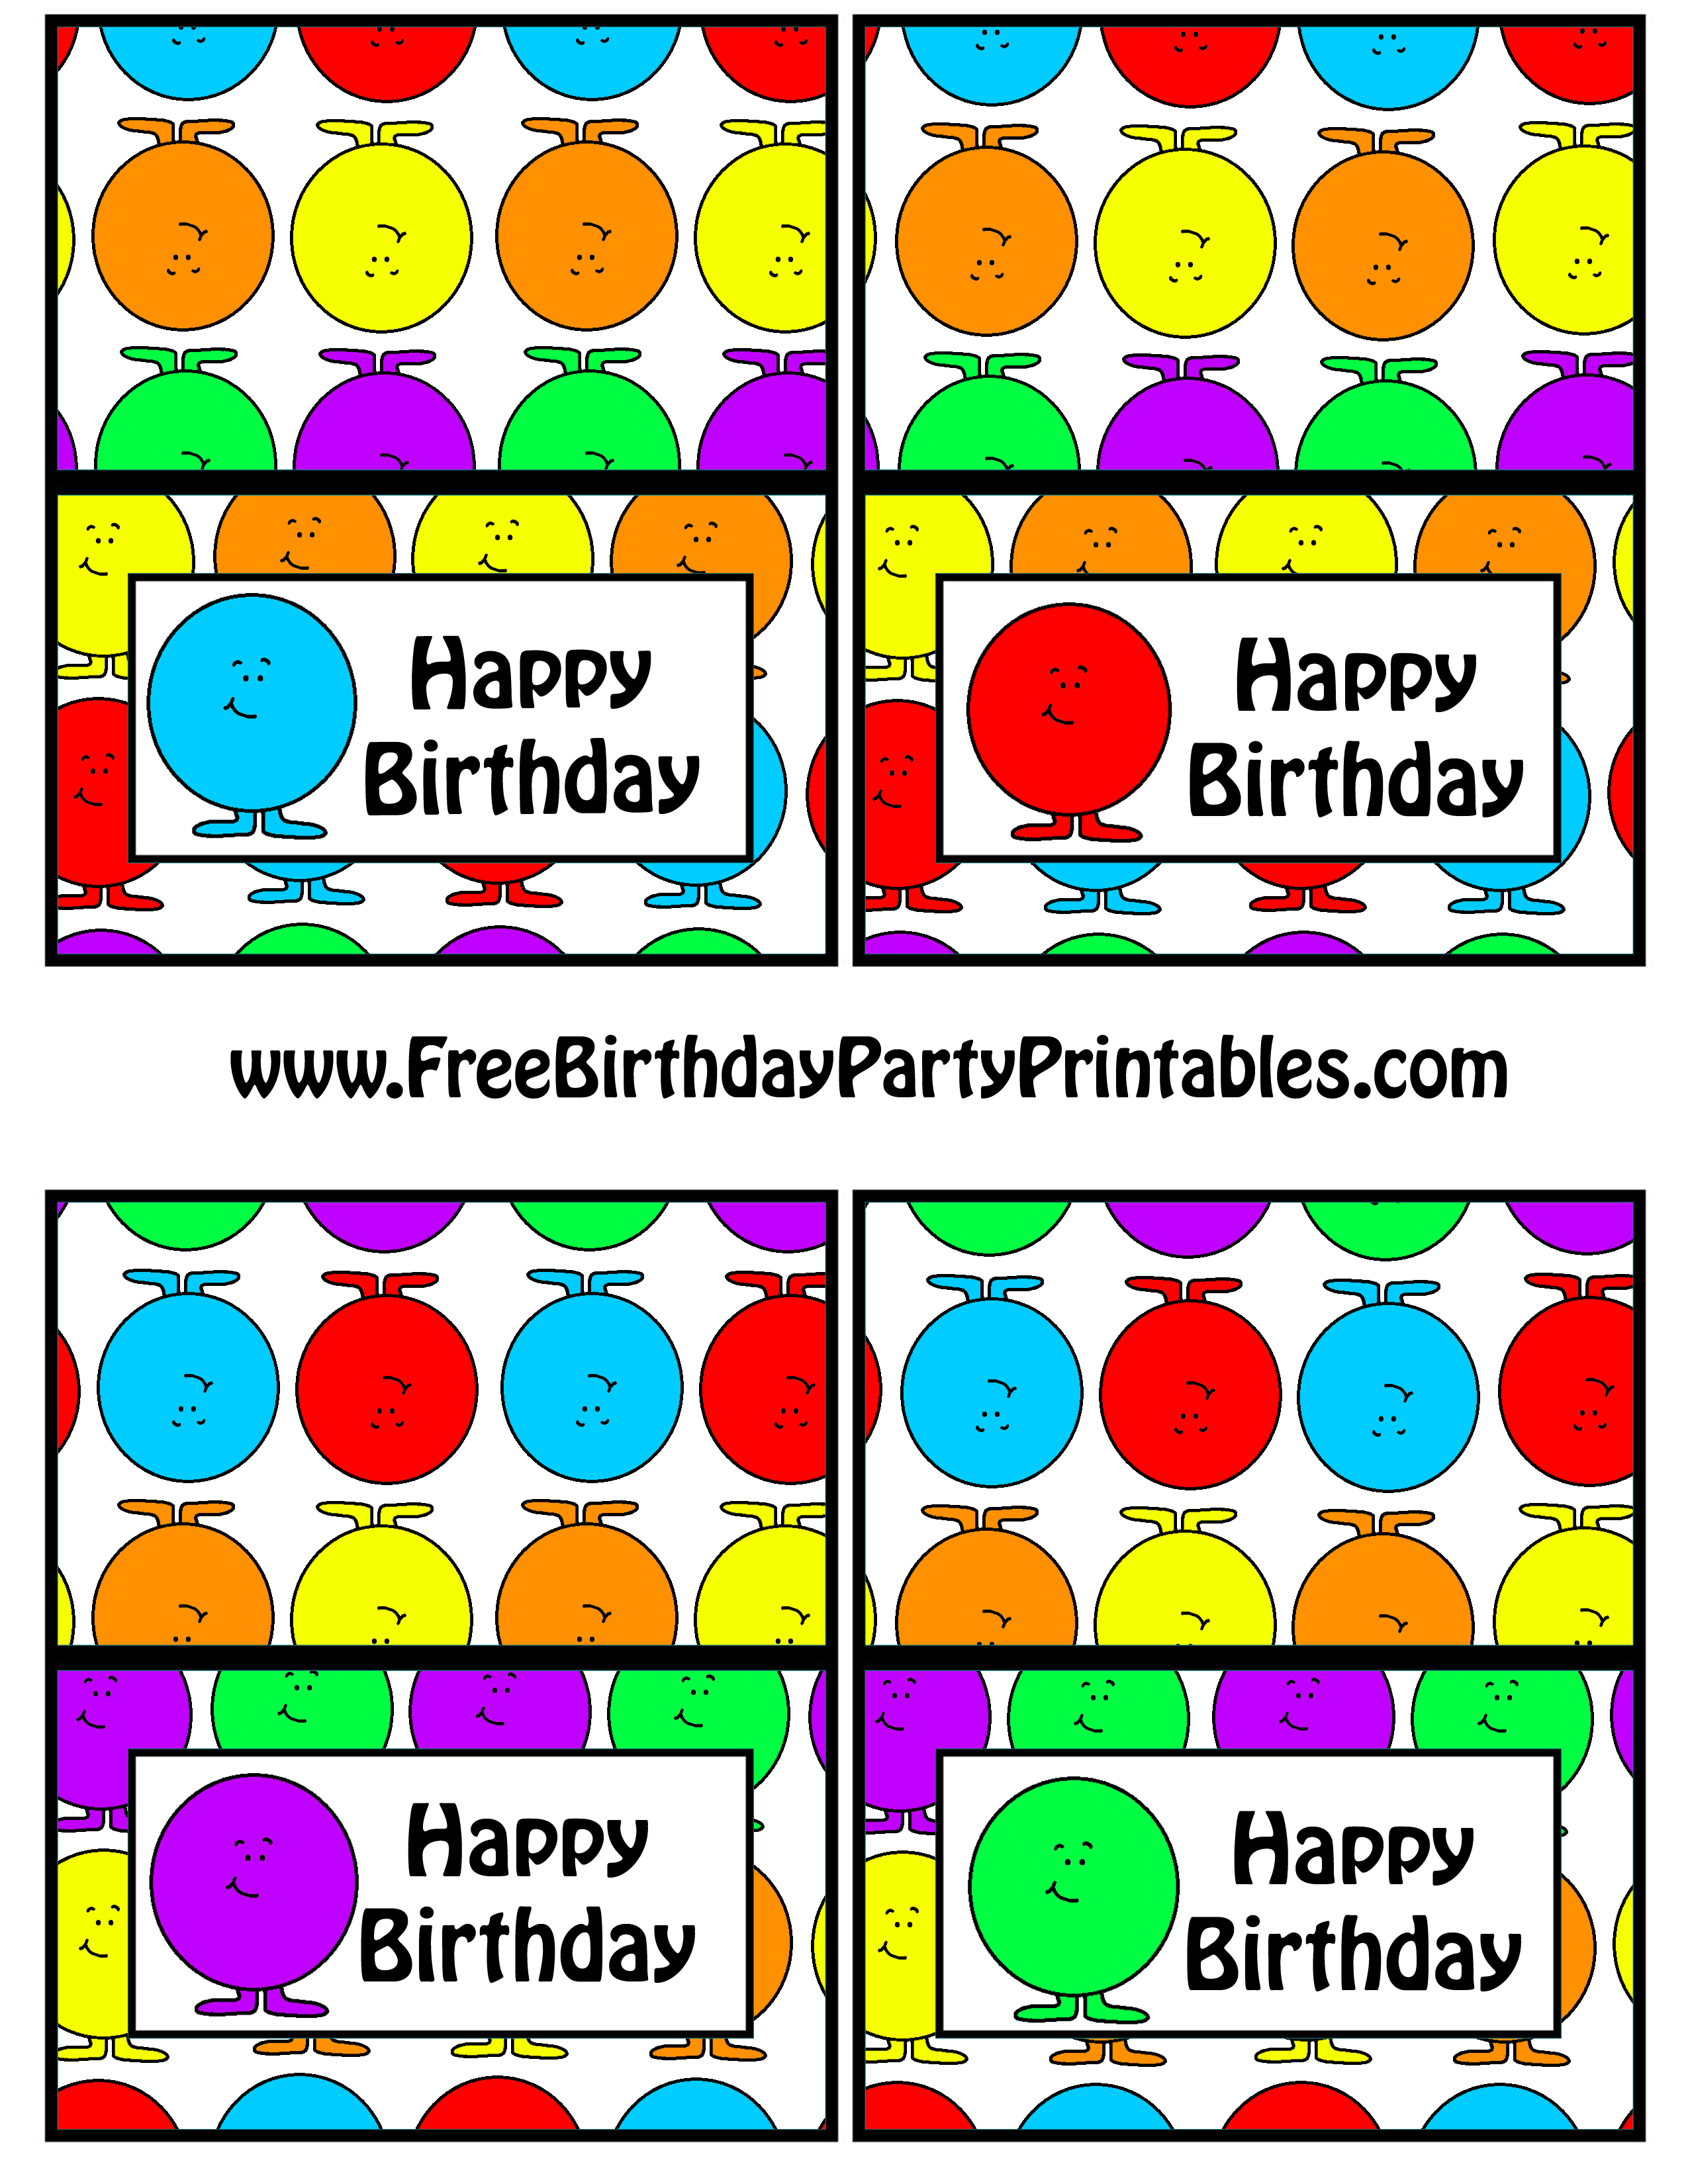 free gumball birthday party printables free birthday party printables